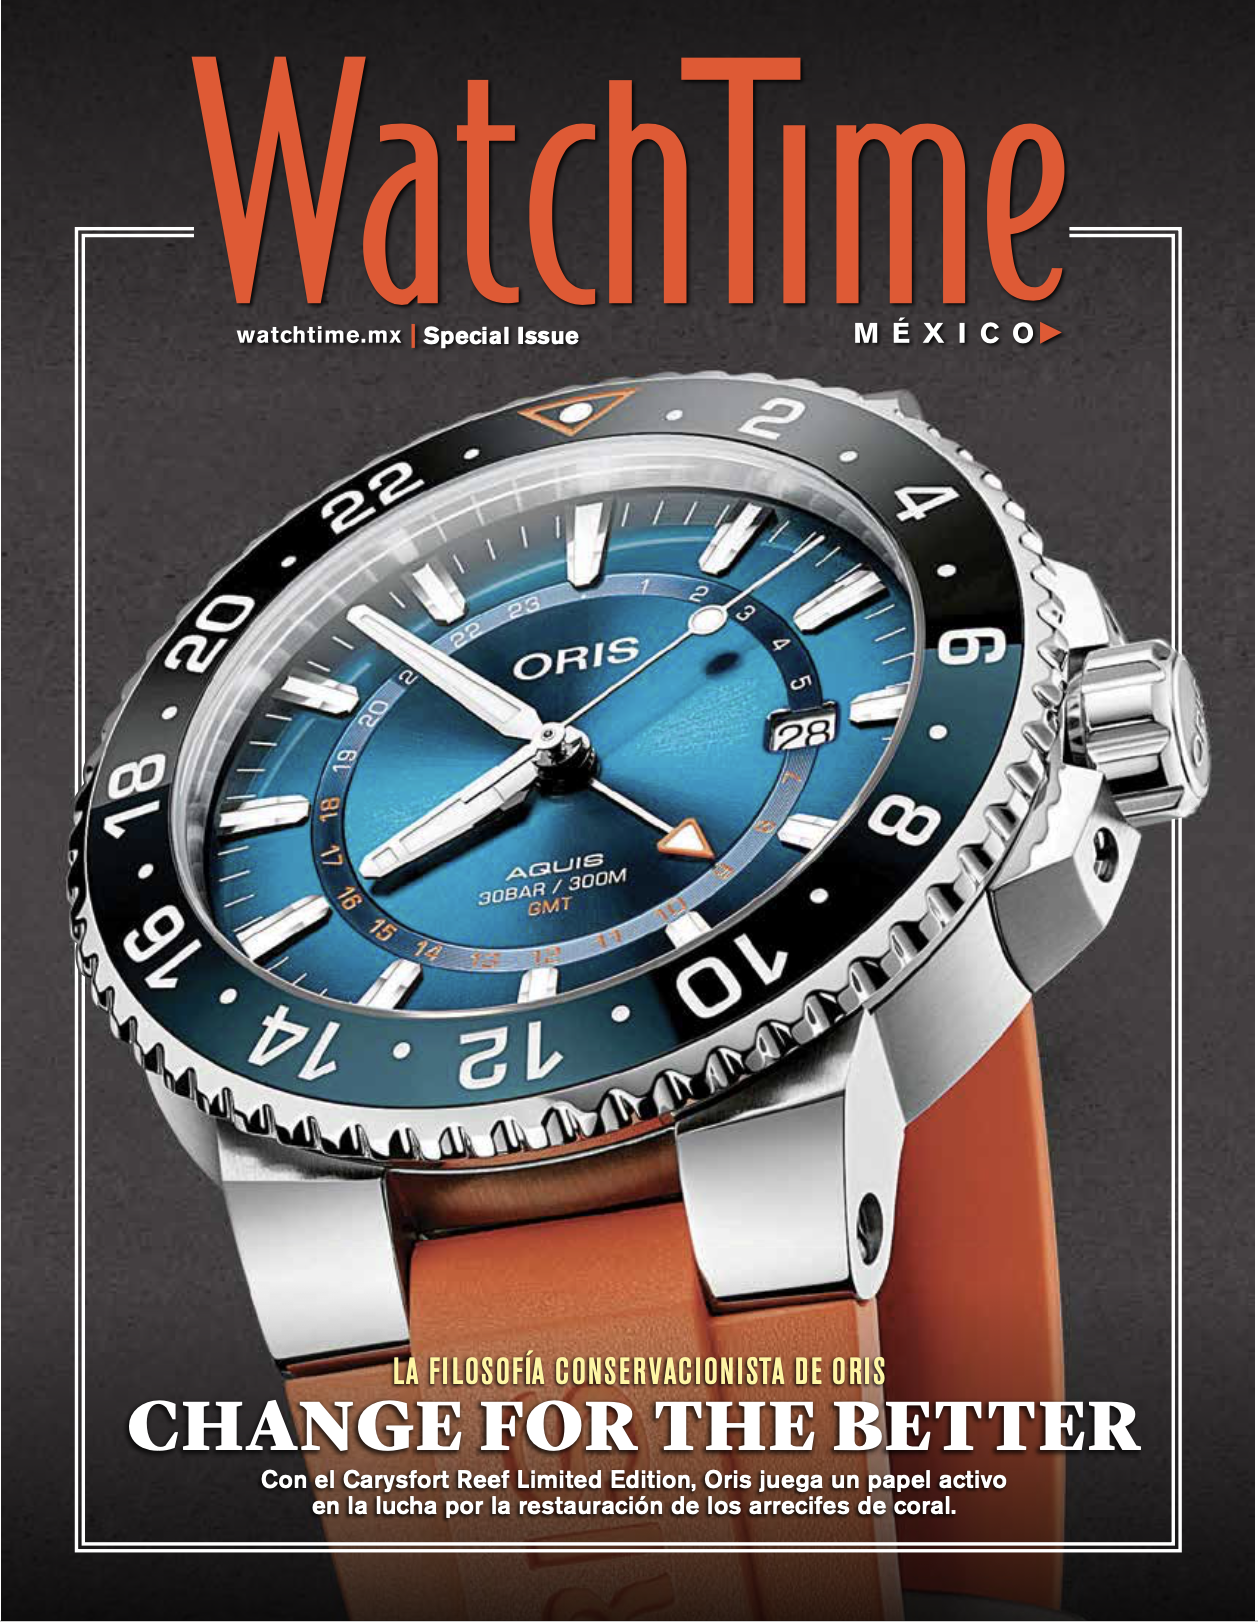 WatchTime Oris Special Issue